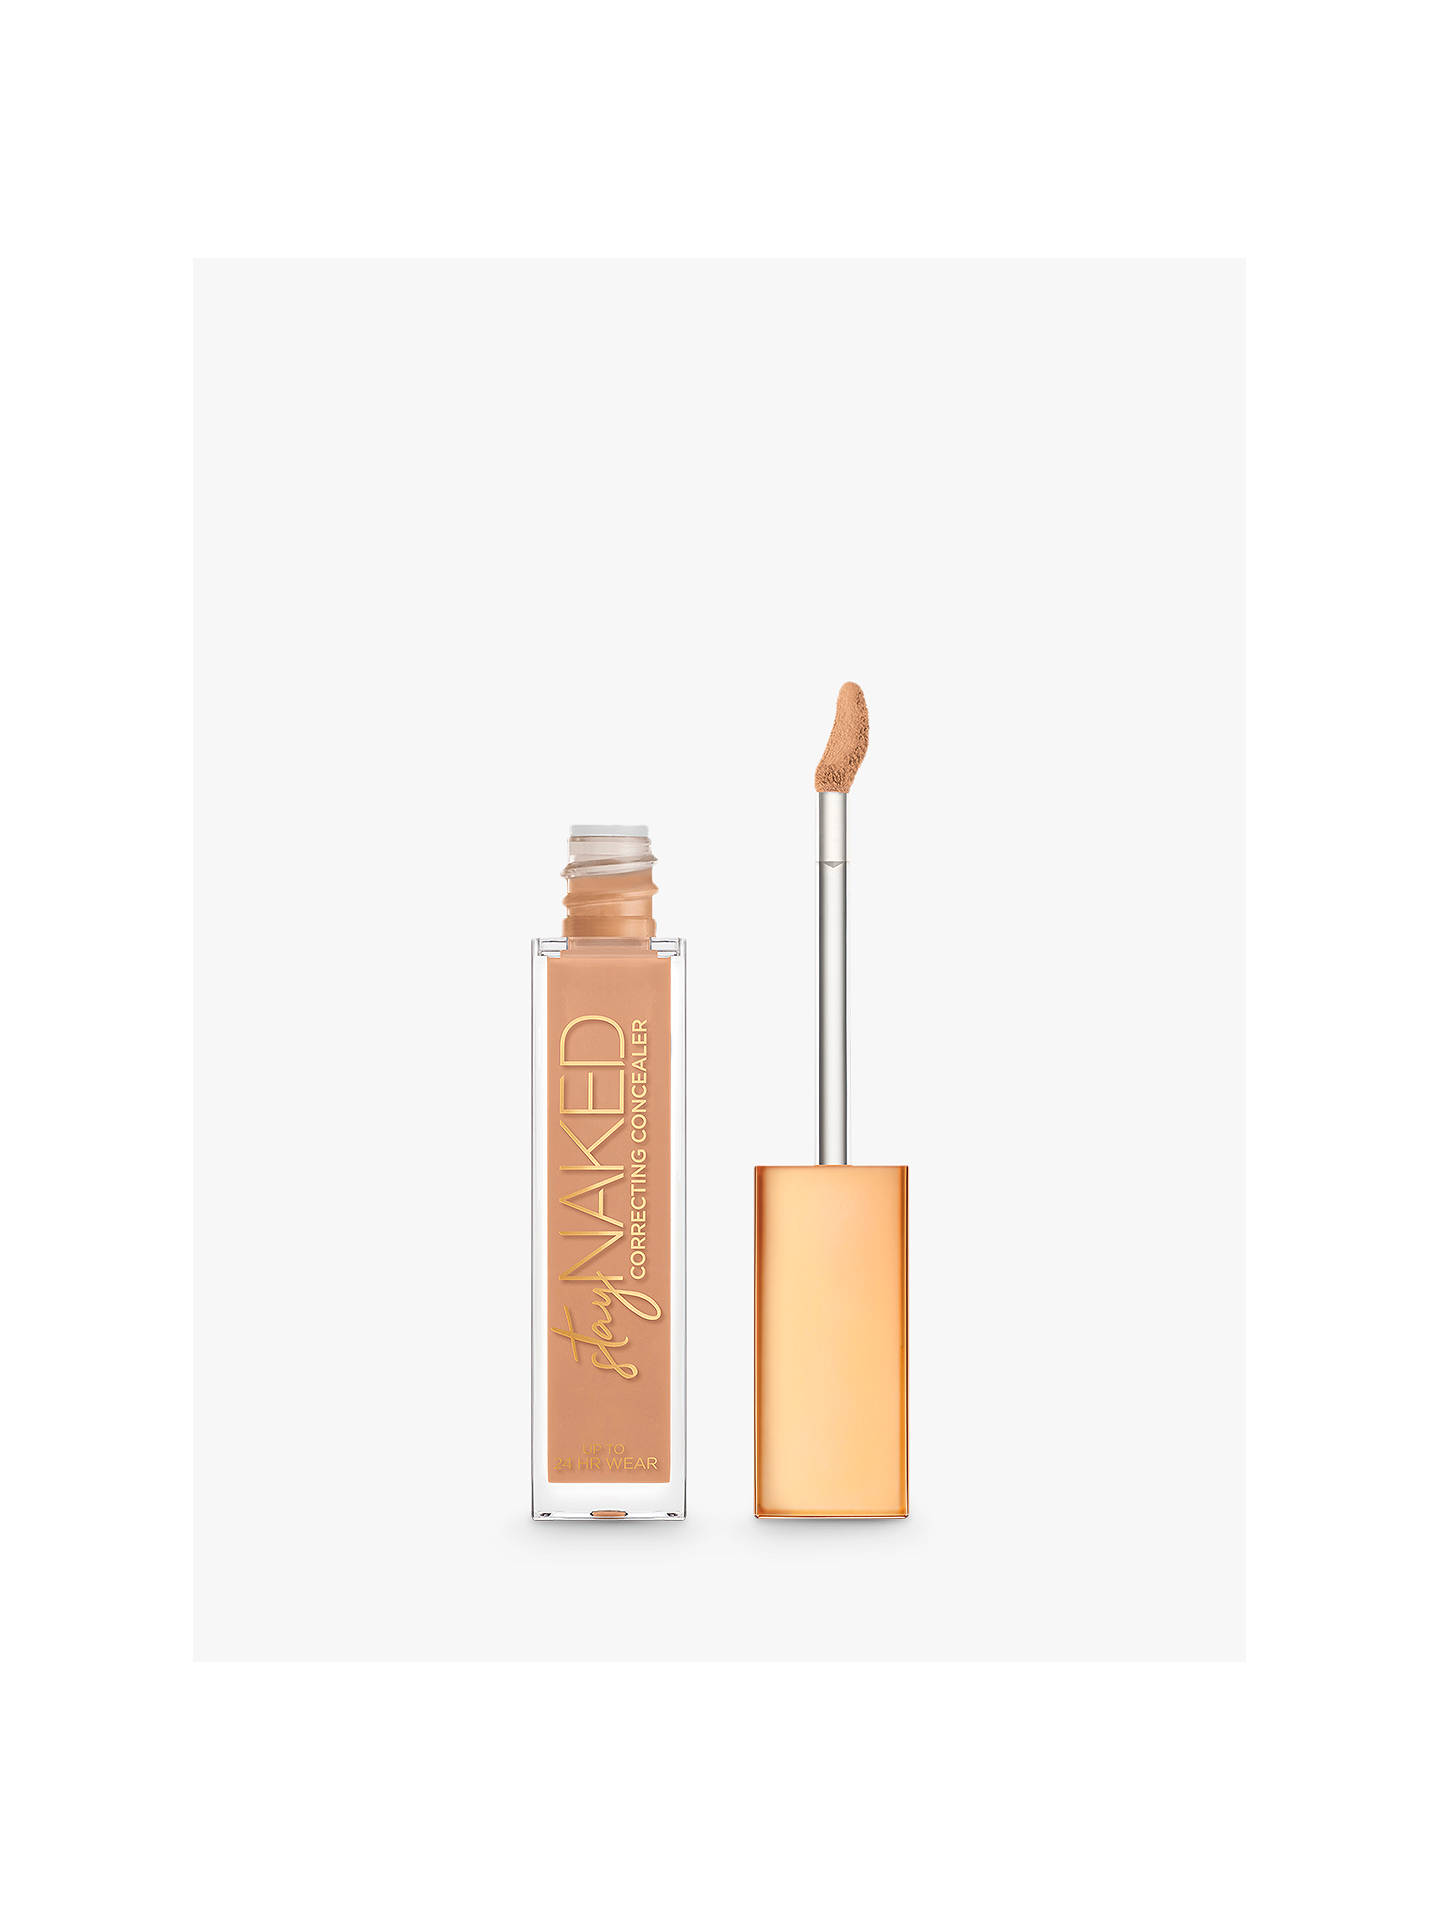 Buy Urban Decay Stay Naked Correcting Concealer, 40CP Online at johnlewis.com